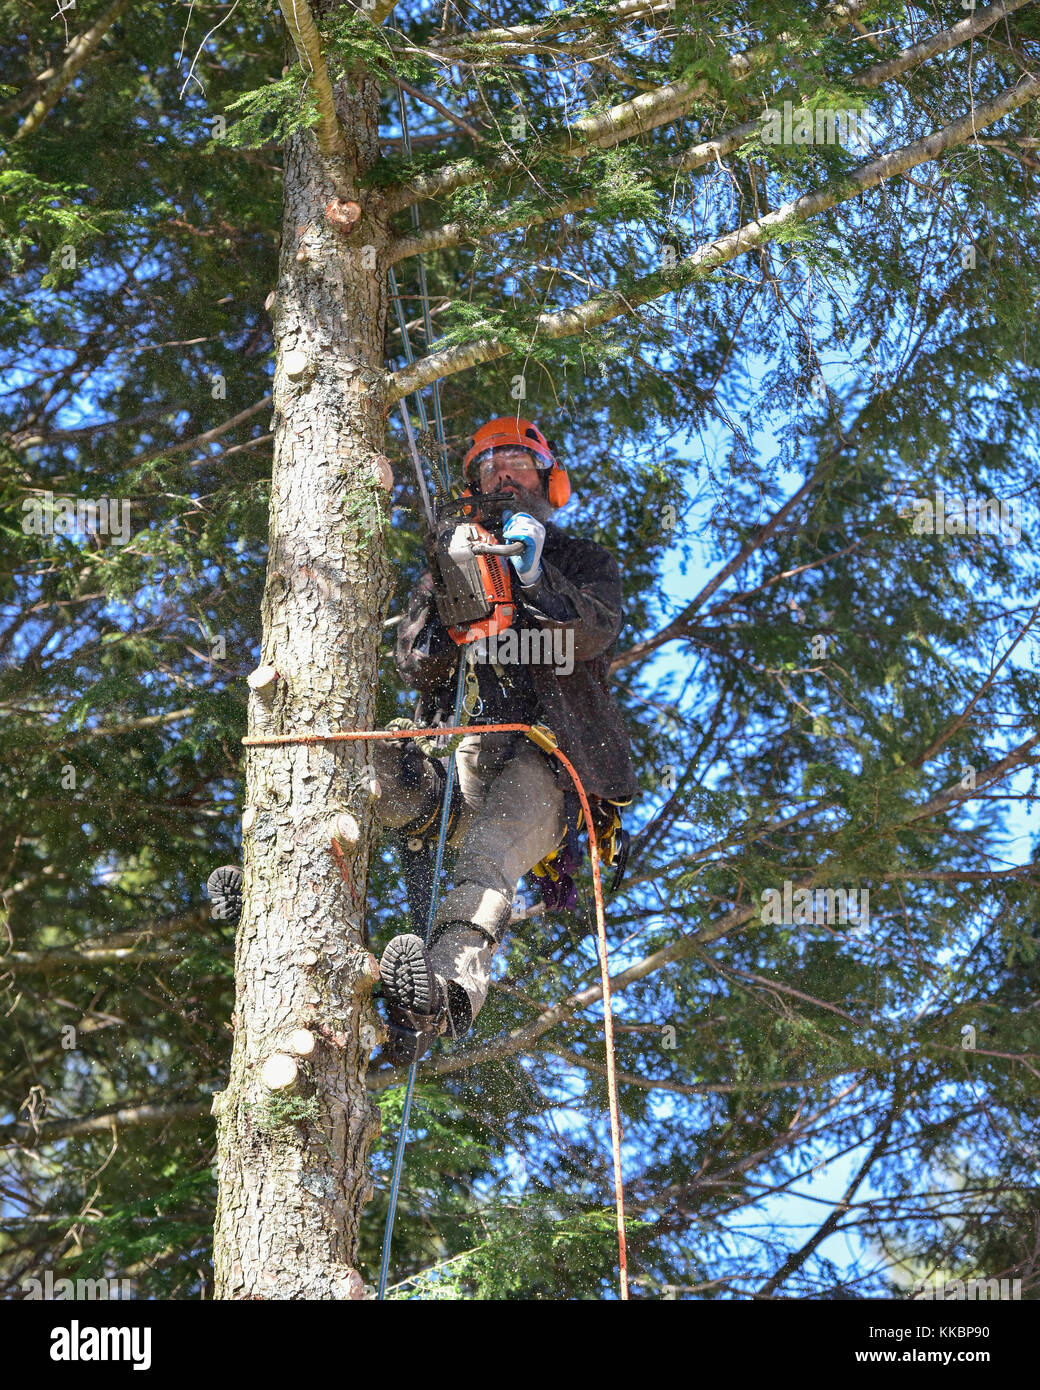 Professional arborist climbing a large hemlock tree and cutting off branches. - Stock Image